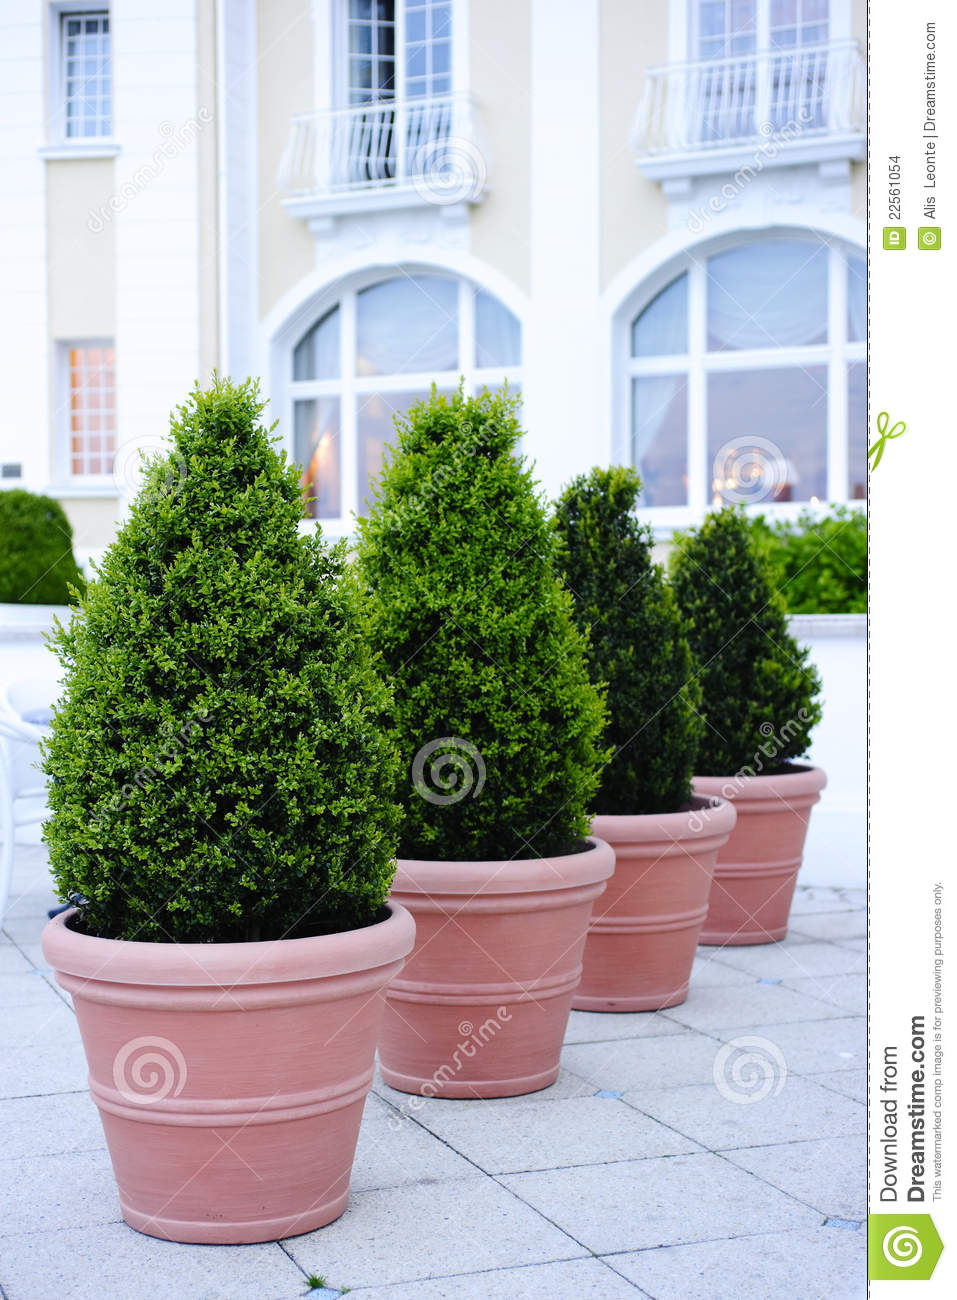 Ornamental Potted Trees Stock Photo Image Of Angled